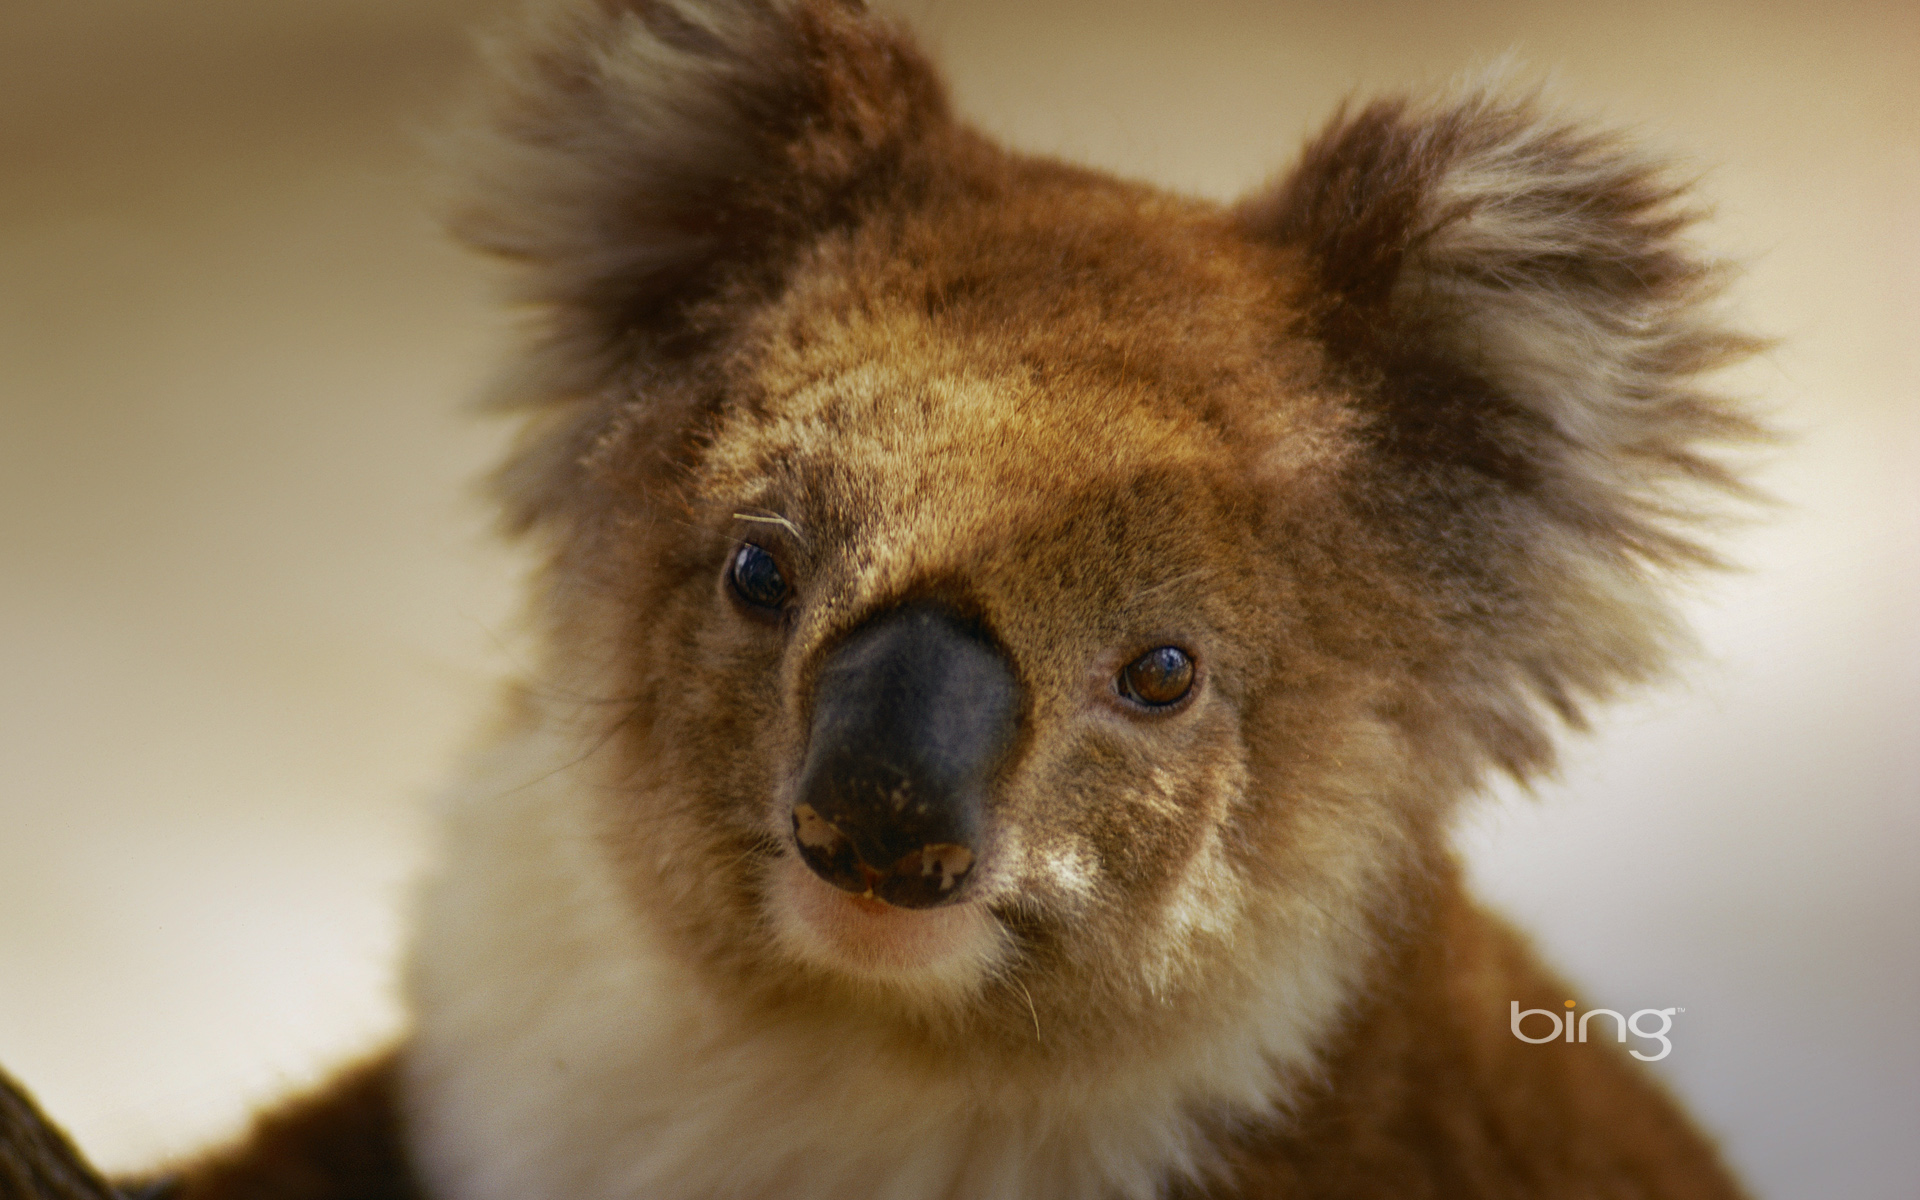 Australian Landmarks & Animals Best Of Bing Australia